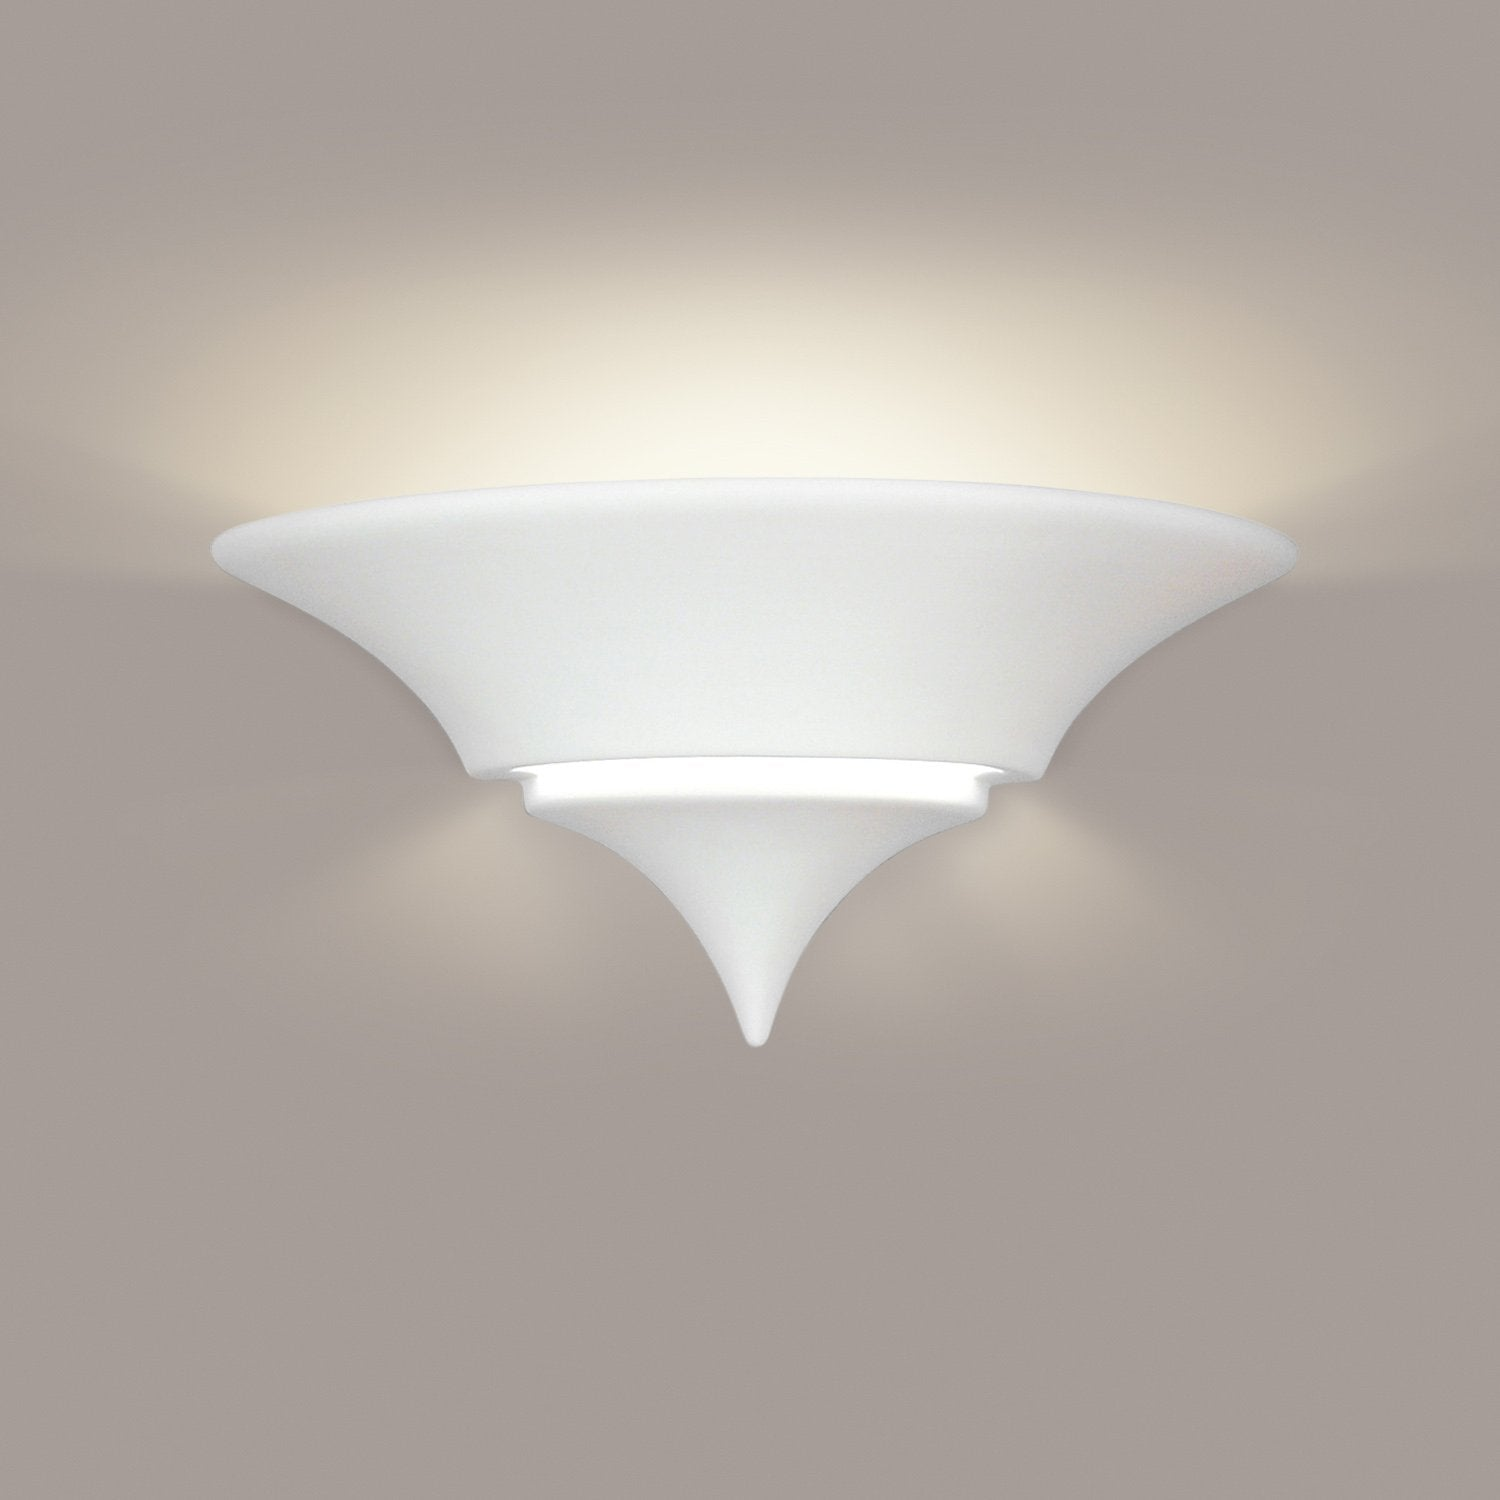 A19 401-A24 Islands of Light Collection Atlantis Rich Earth Finish Wall Sconce